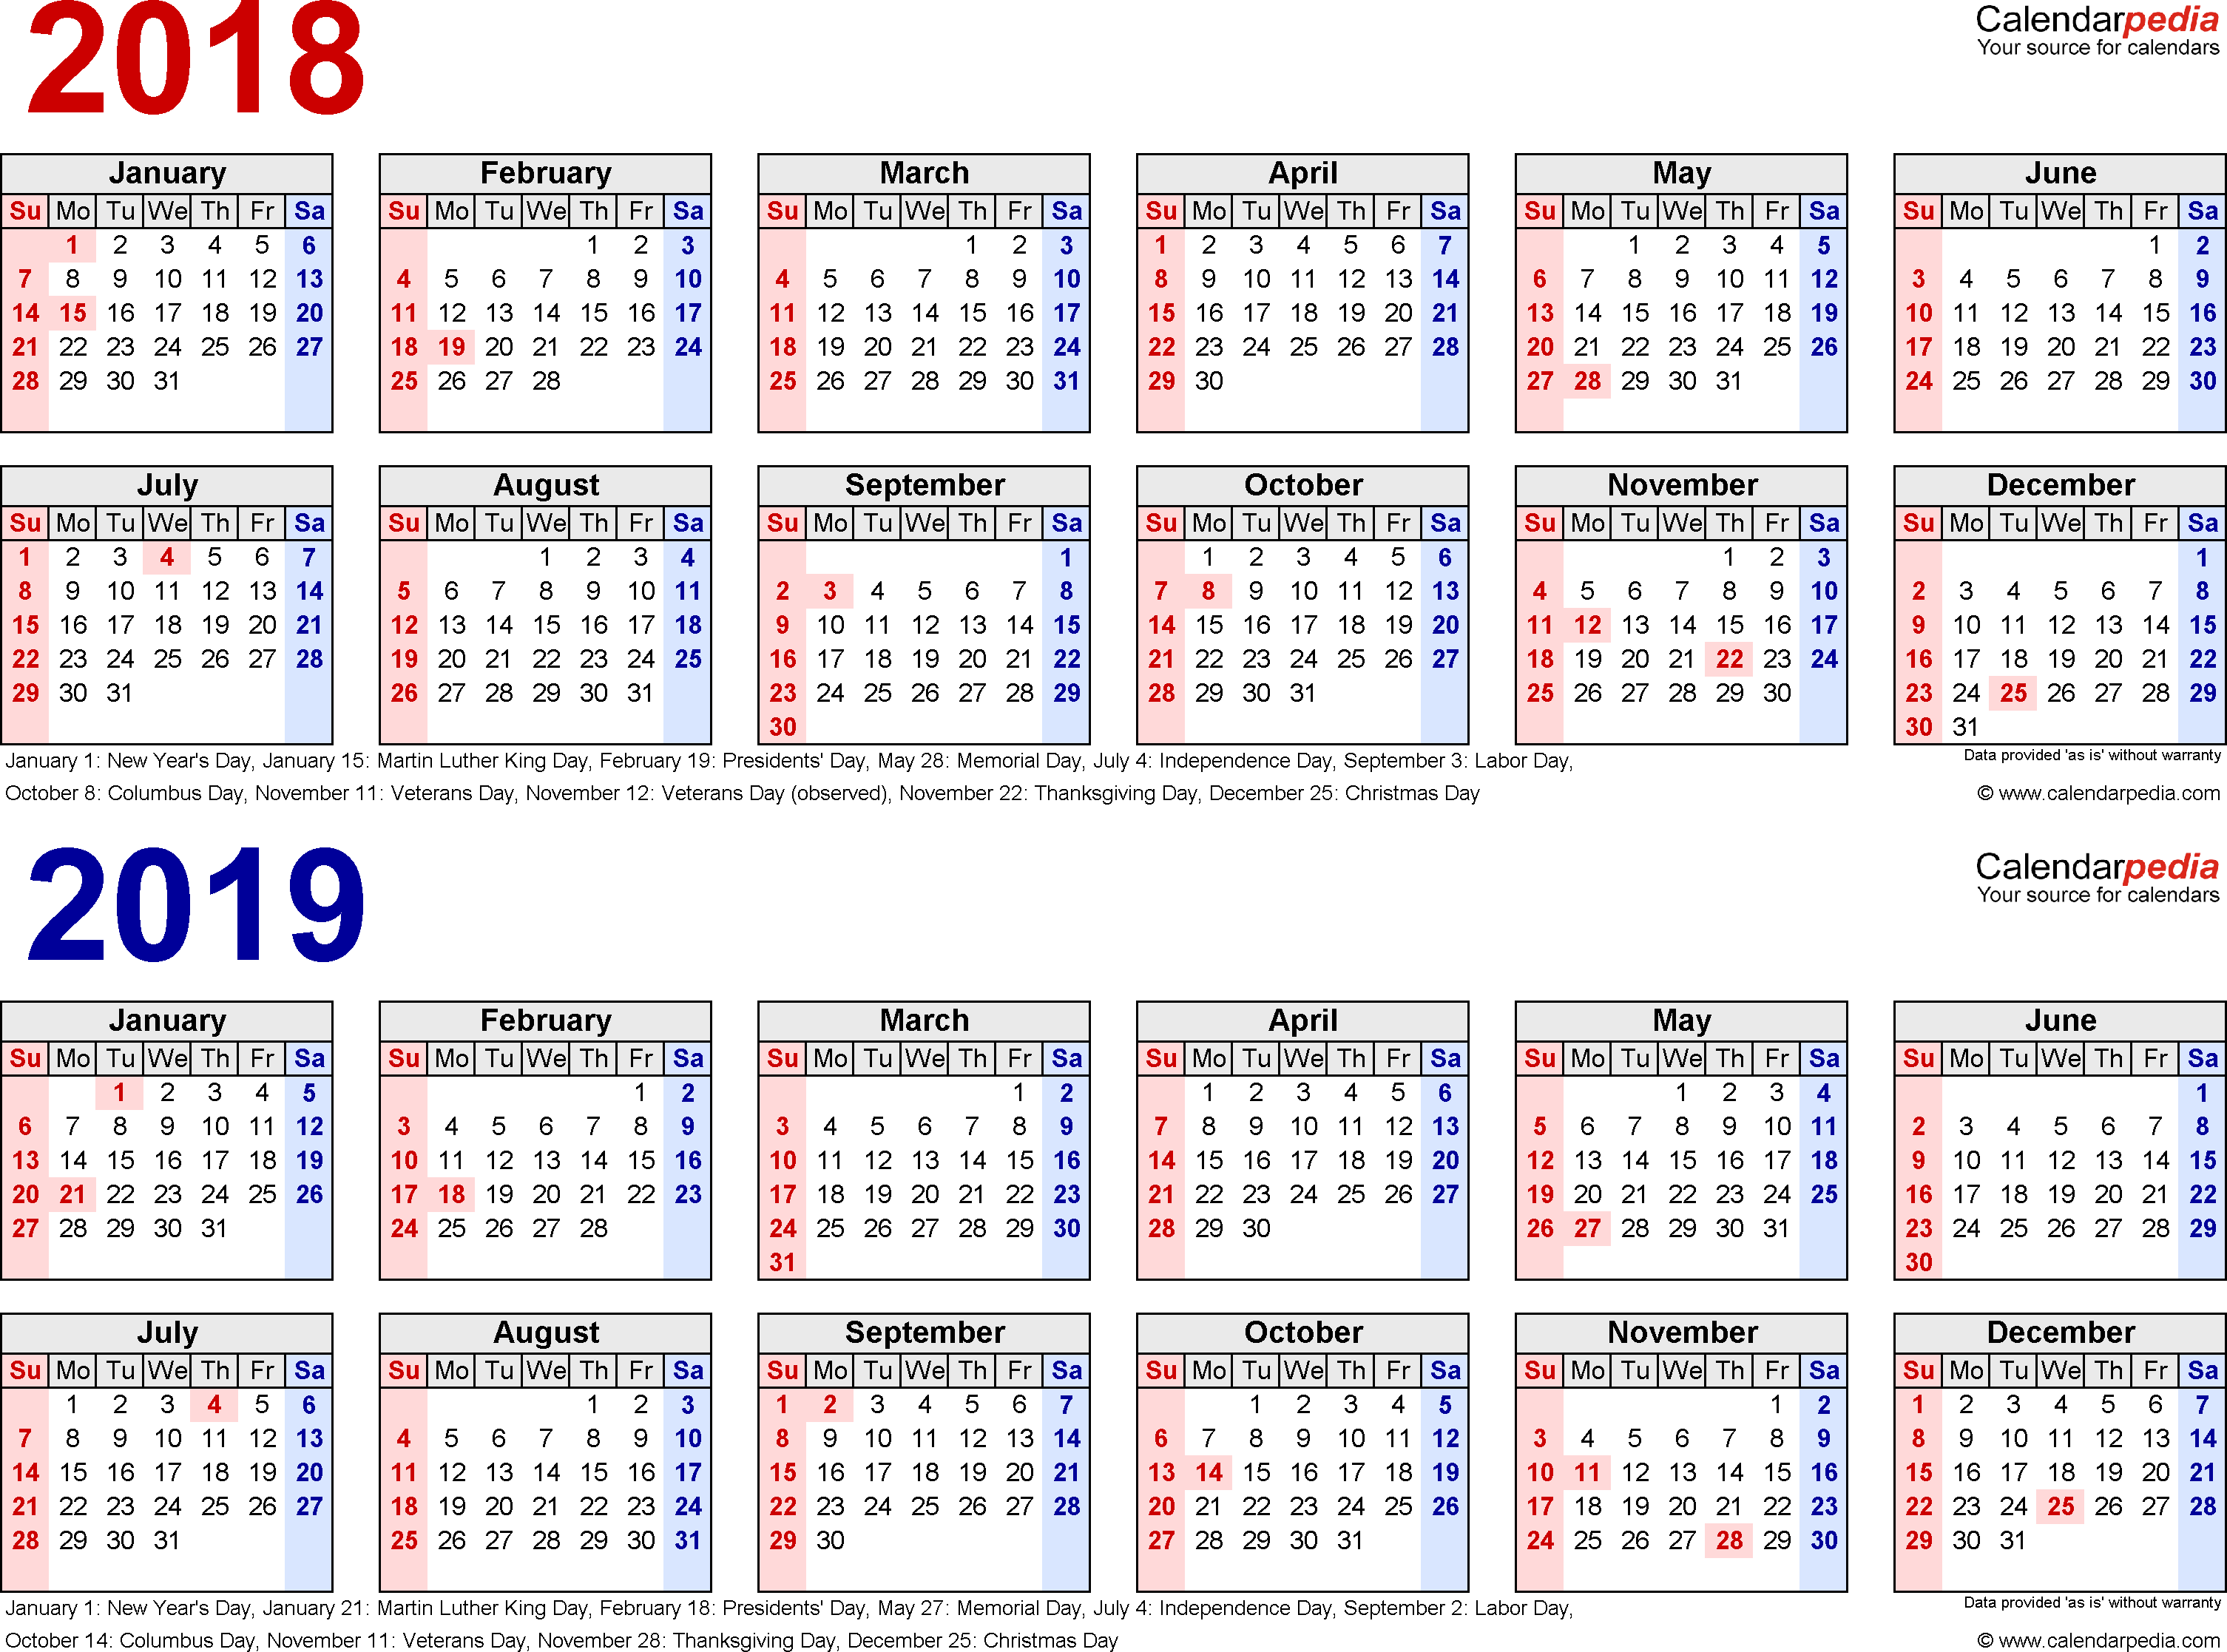 Download Template 1: PDF template for two year calendar 2018/2019 (landscape orientation, 1 page, linear, in red and blue)